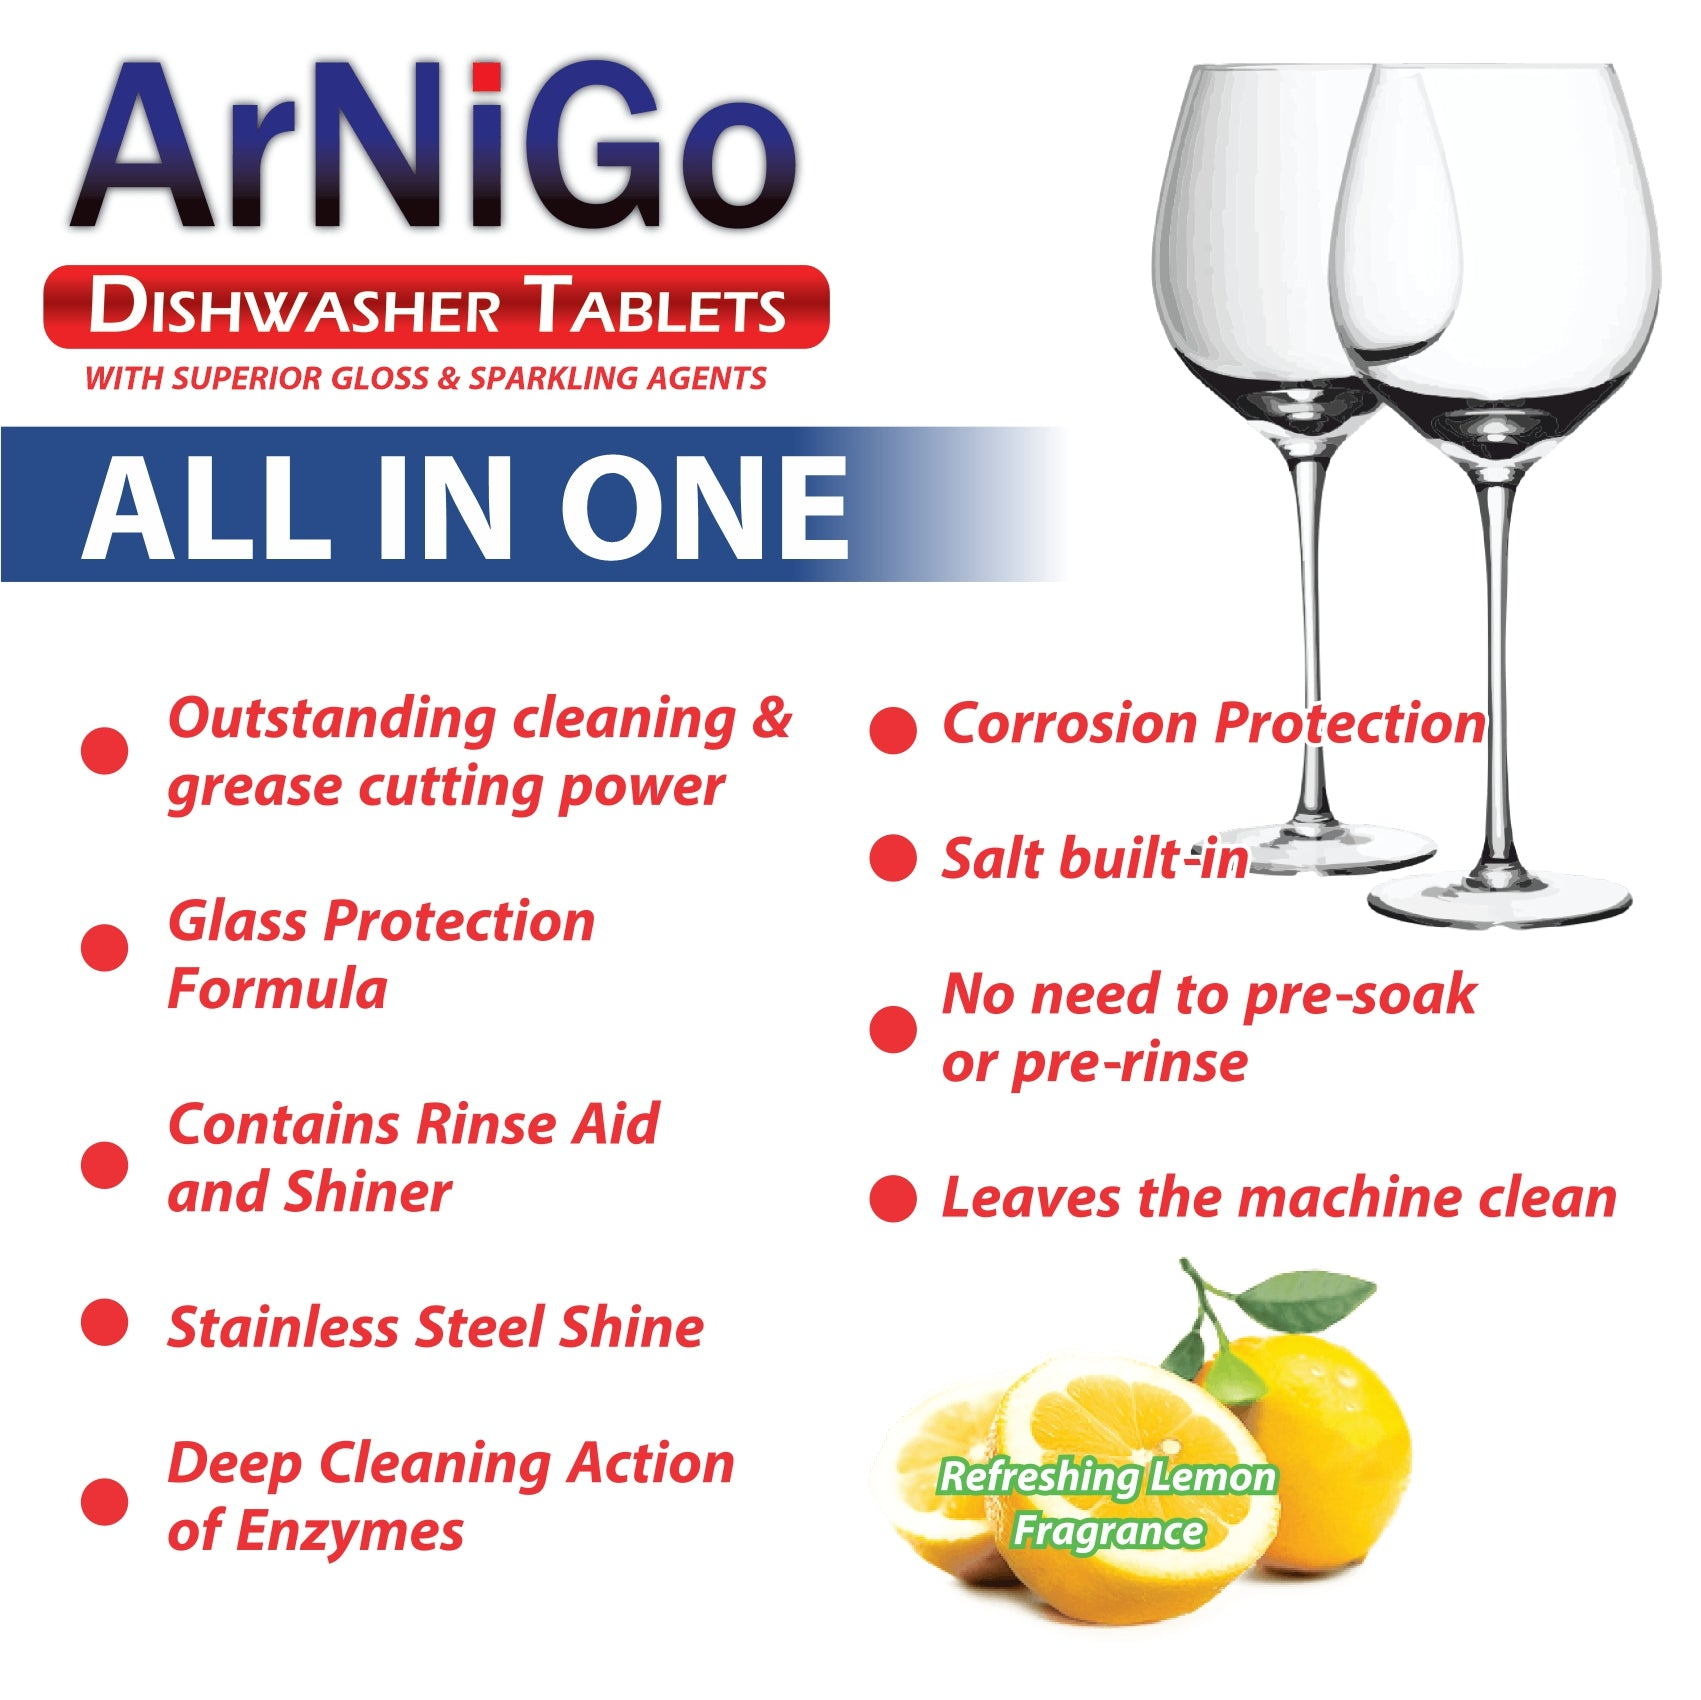 Arnigo (All in One) Dishwasher Tablets - 30 Tablets